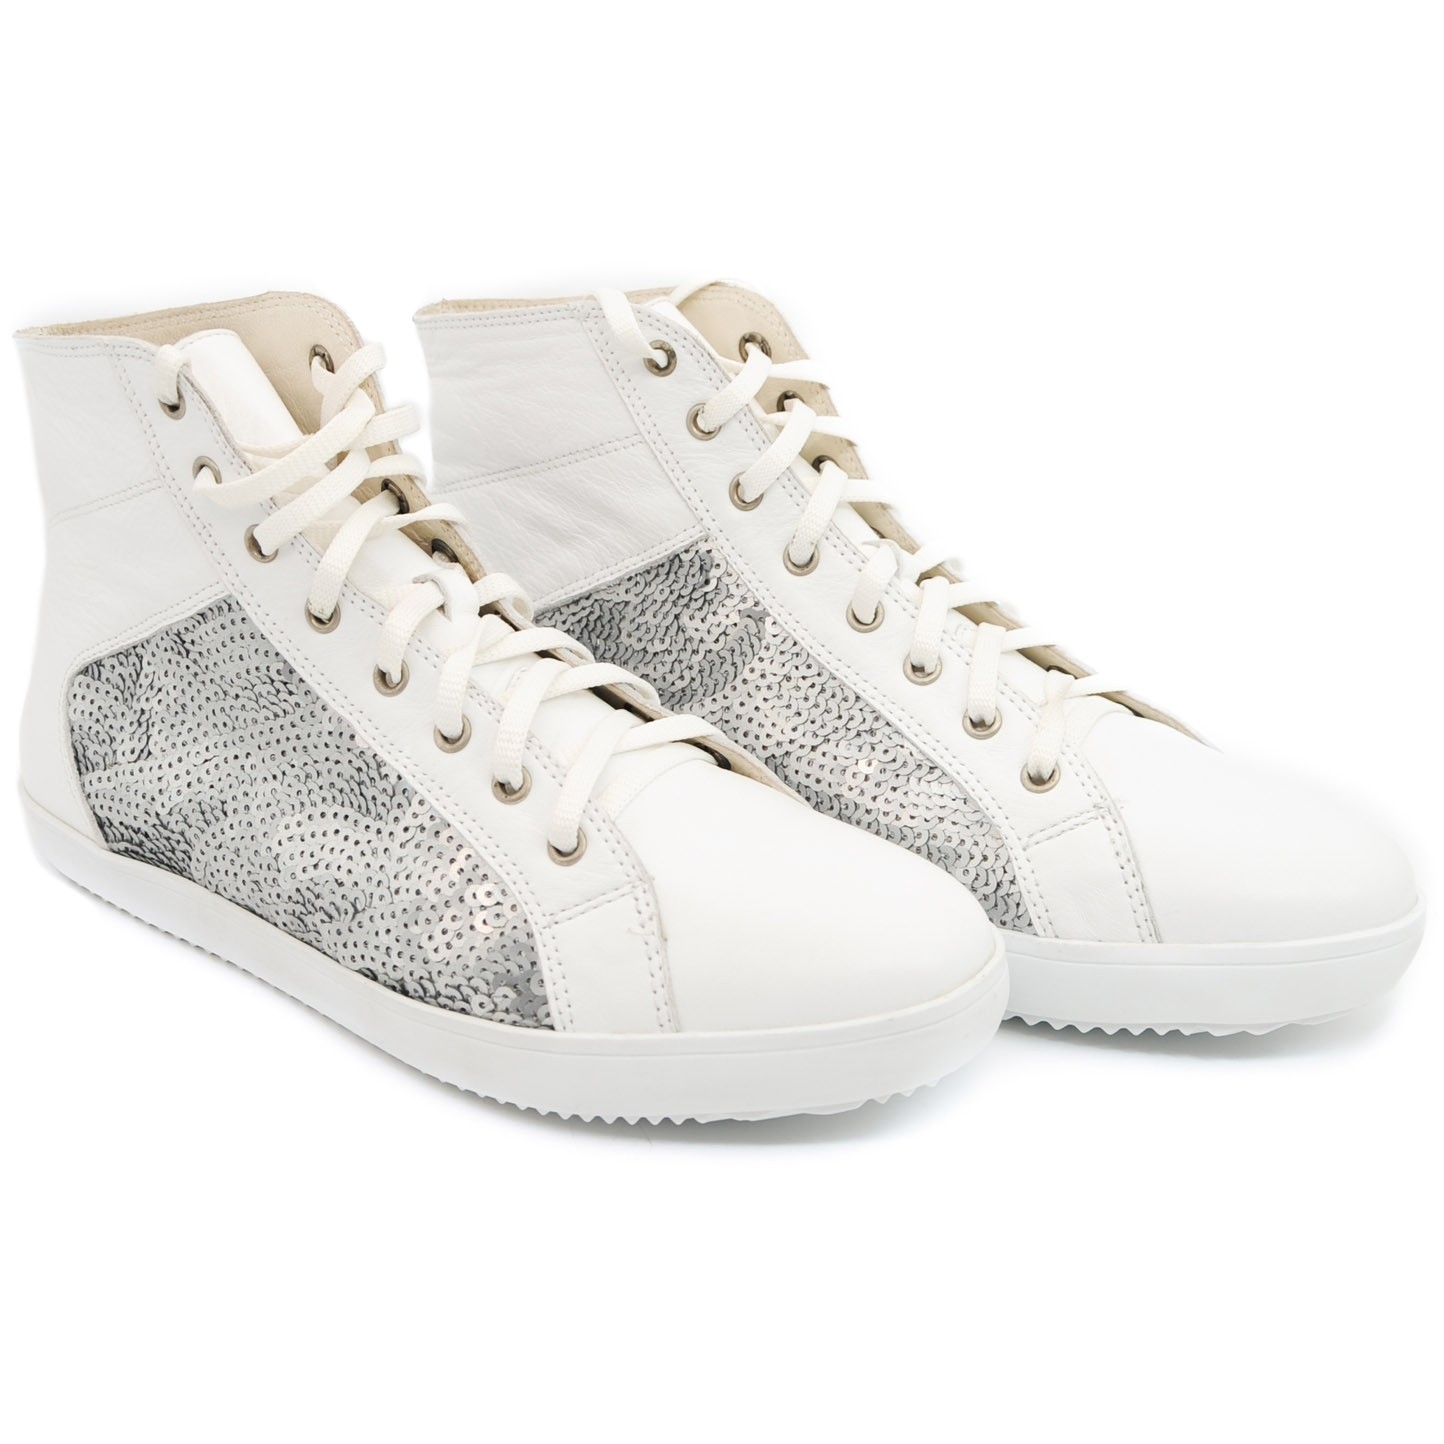 White Converse Style Leather Sneakers with Silver Patterned Side Sequins and Laced Front